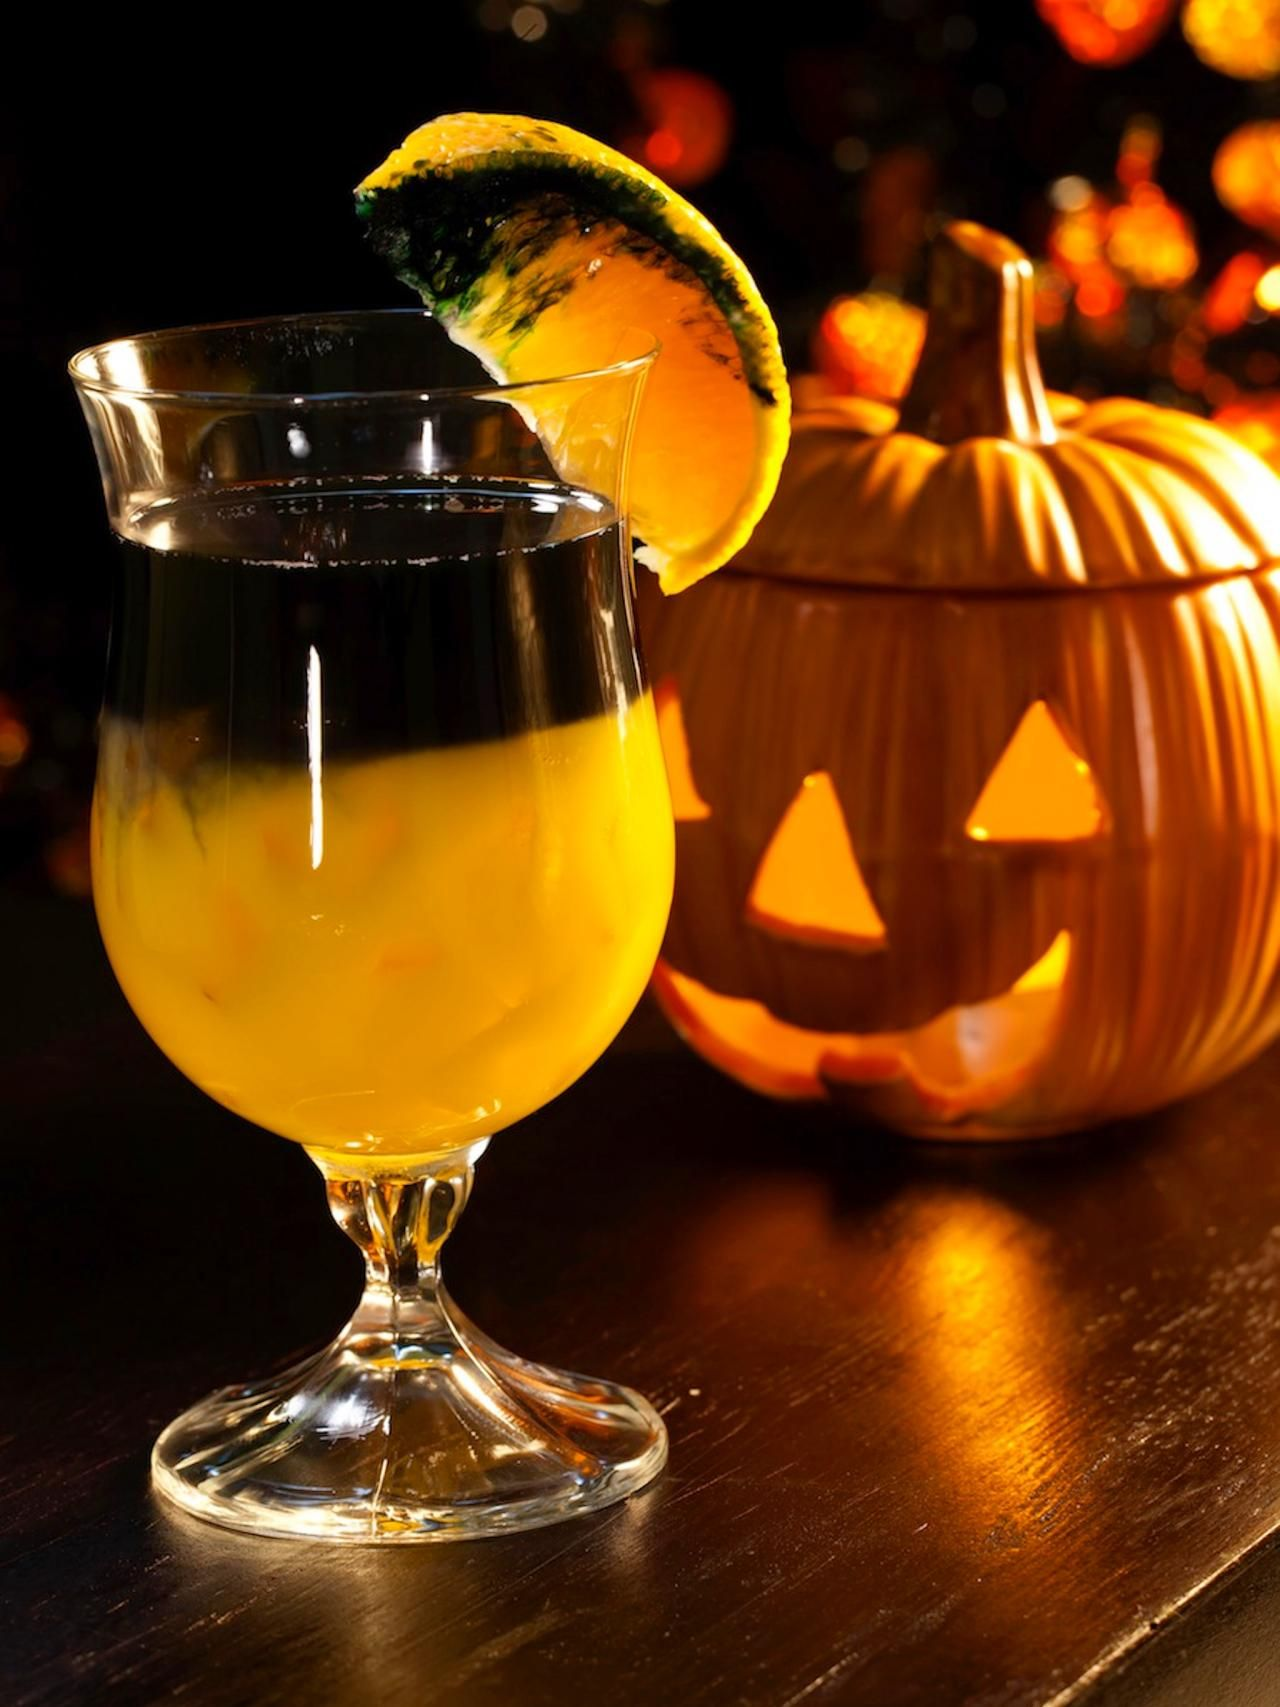 23 Halloween Cocktail Recipes   Entertaining Ideas & Party Themes for Every Occasion >> http://www.hgtv.com/design/make-and-celebrate/entertaining/23-to-die-for-halloween-cocktails-pictures?soc=pinterest